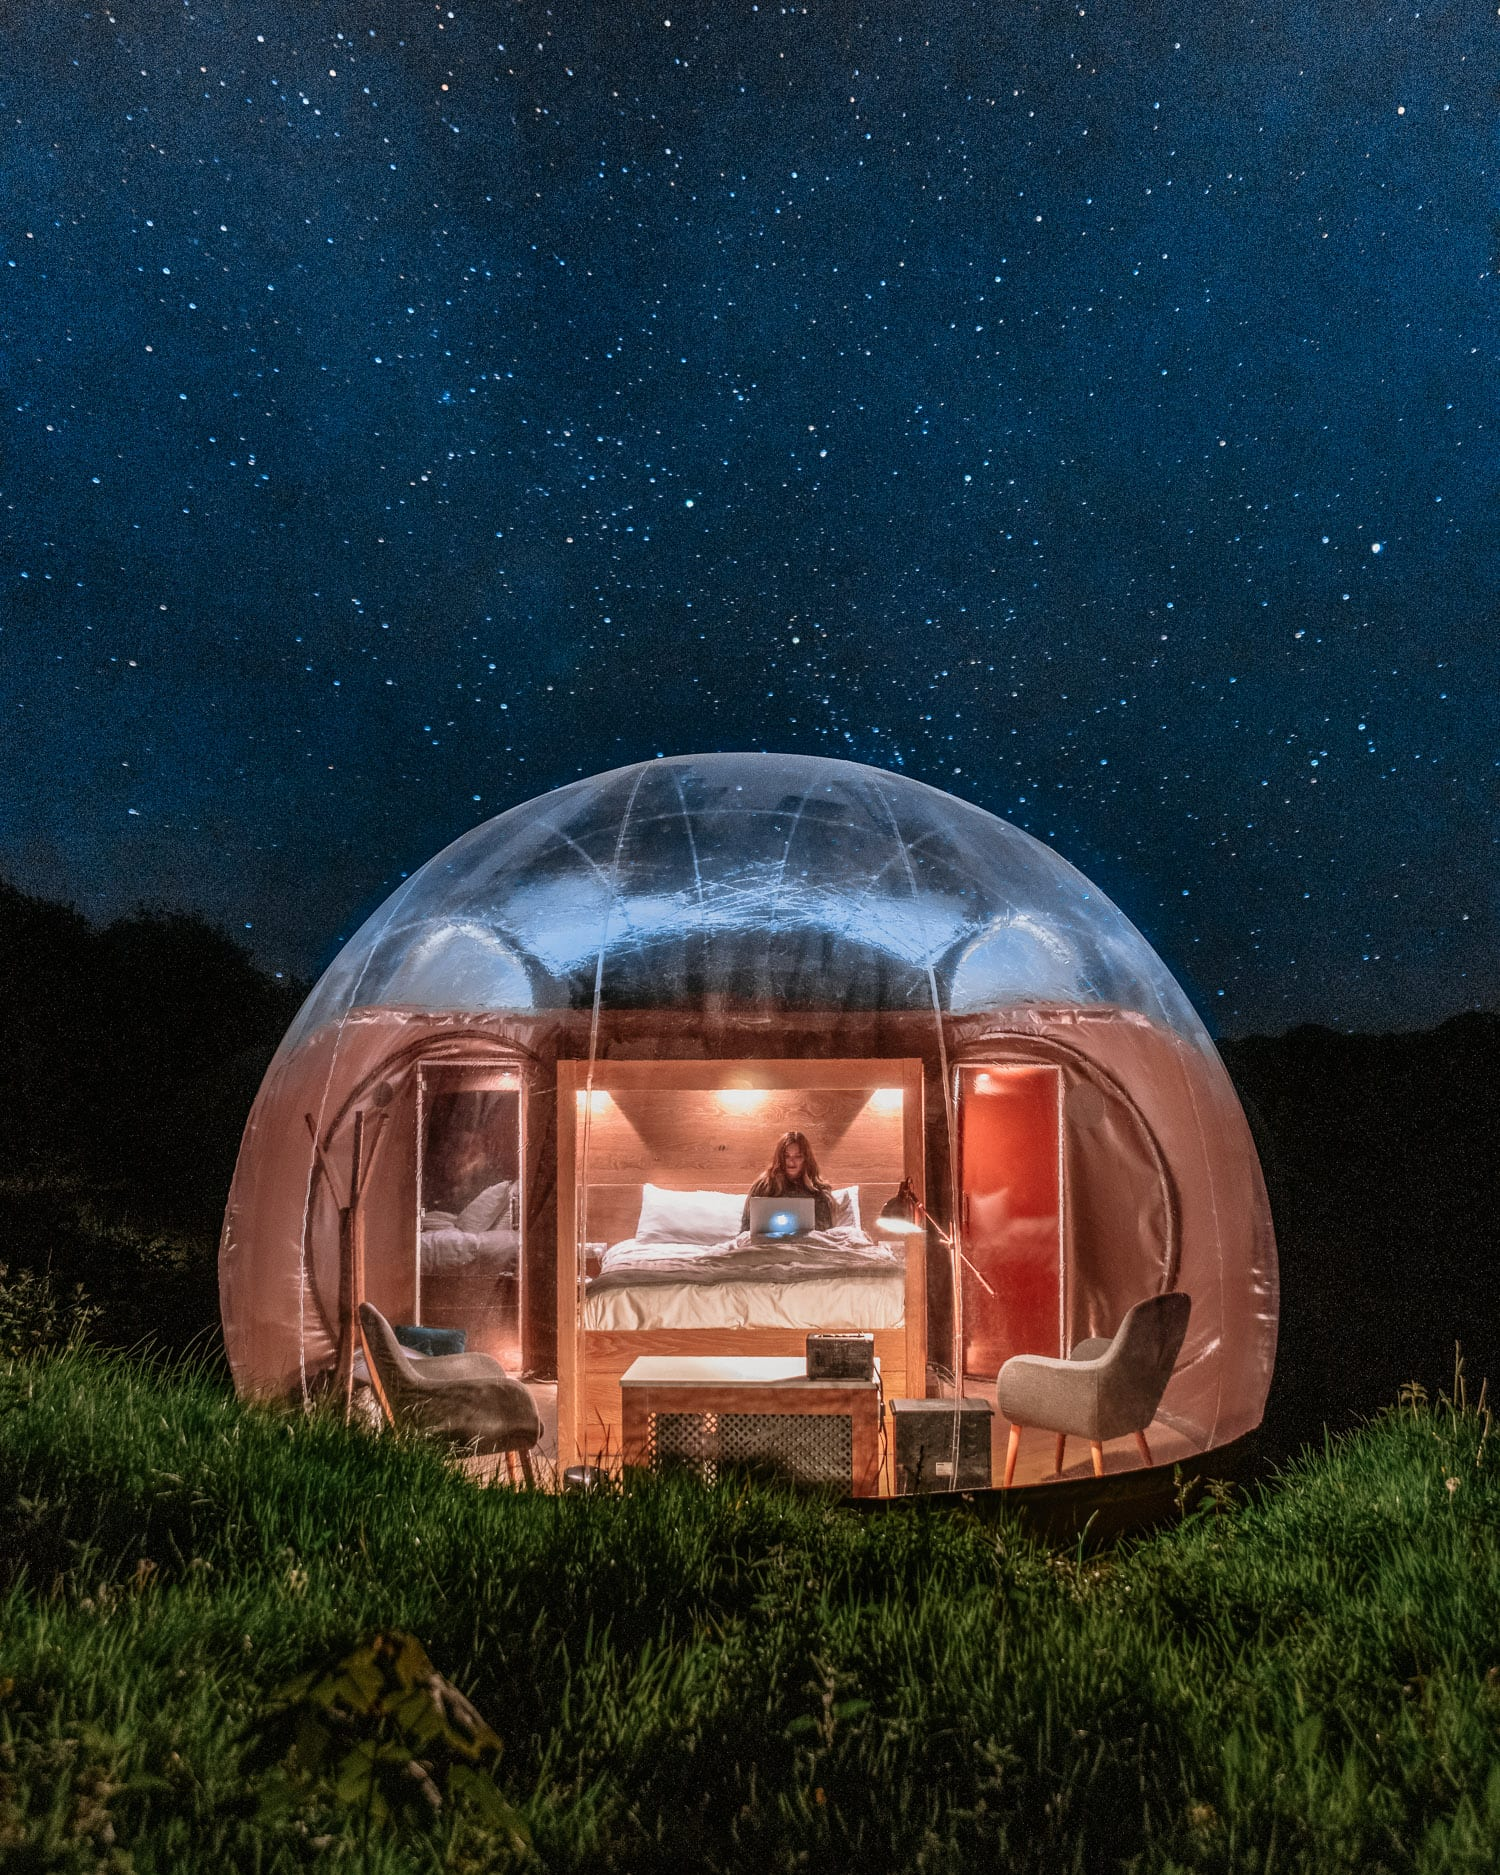 Stargazing in Bubble Dome in Finn Lough Resort, Northern Ireland